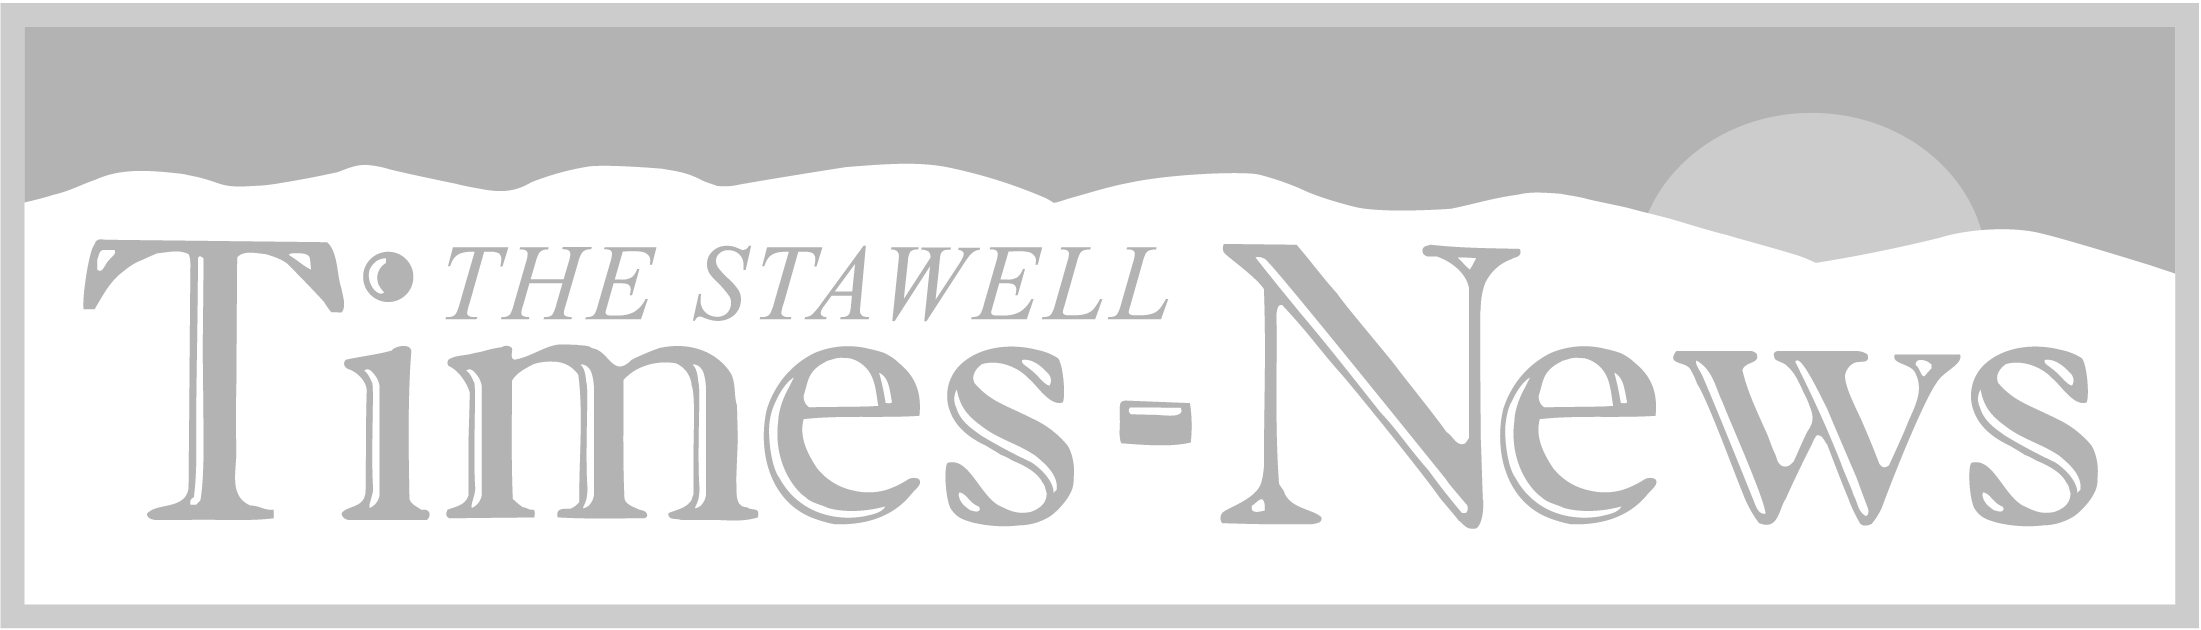 The Stawell Times-News